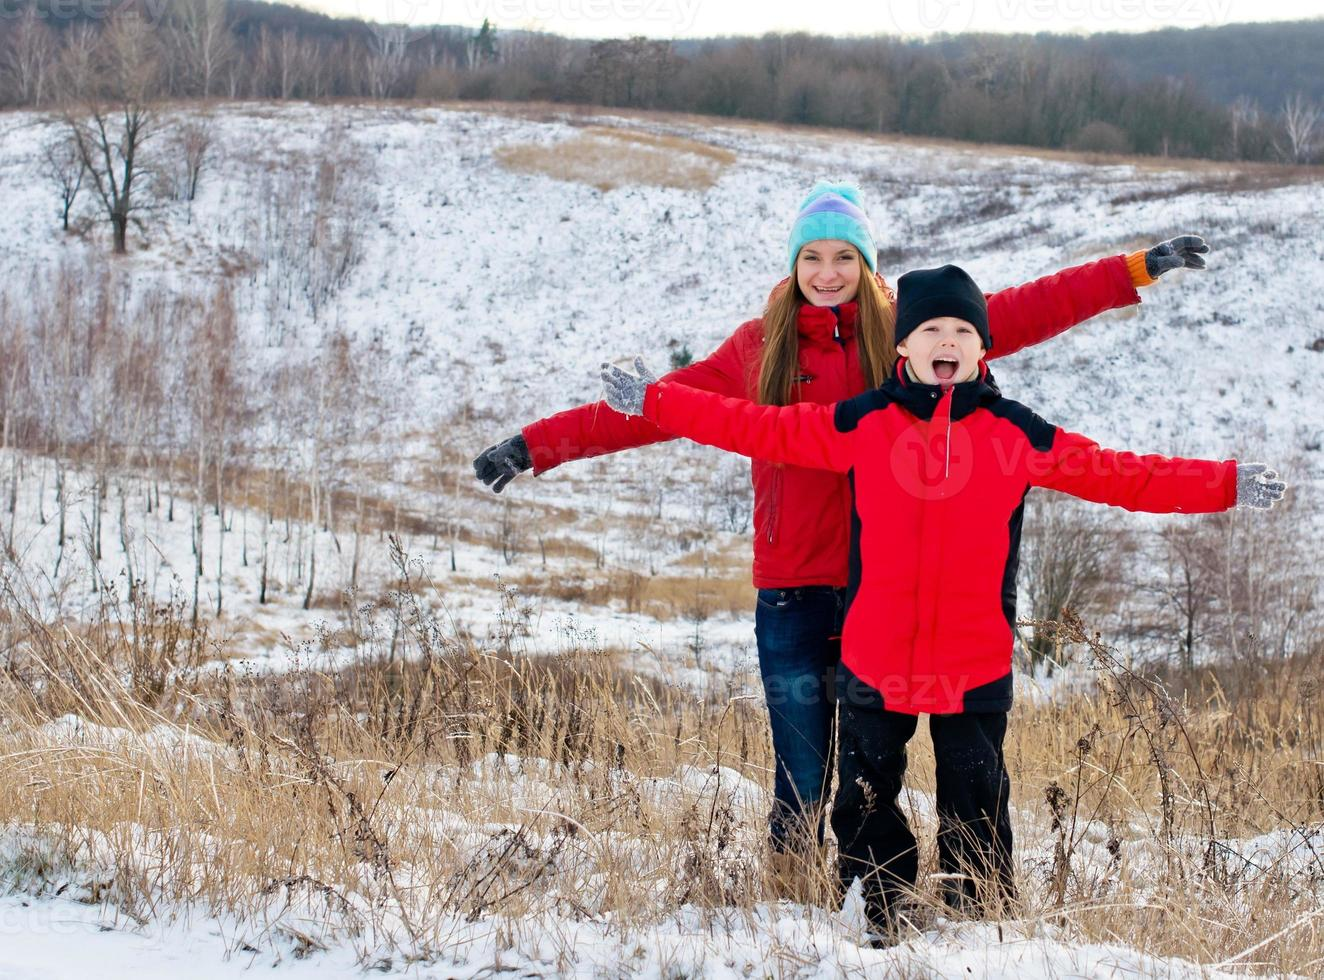 Laughing children together outdoors in winter. photo